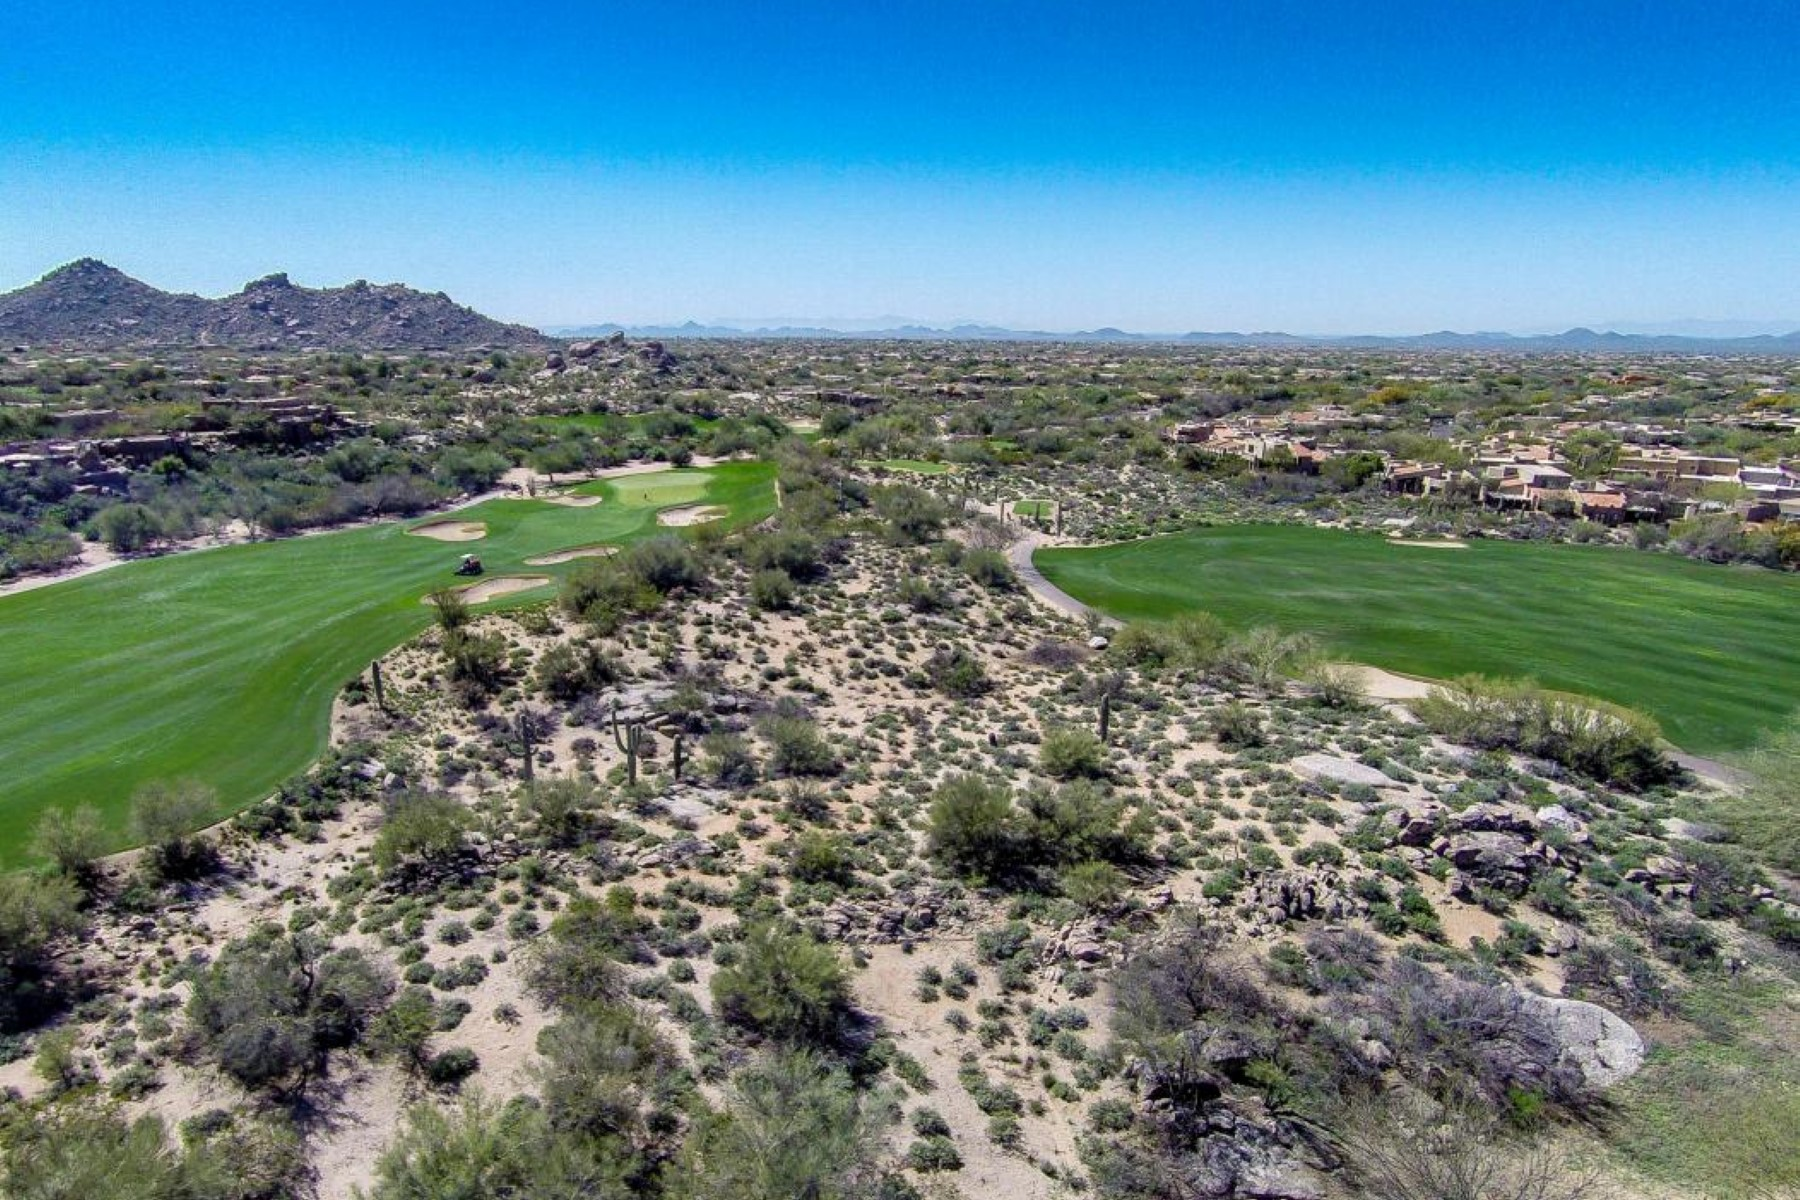 Property For Sale at Situated between the 14th & 18th fairway of The Boulders South Course